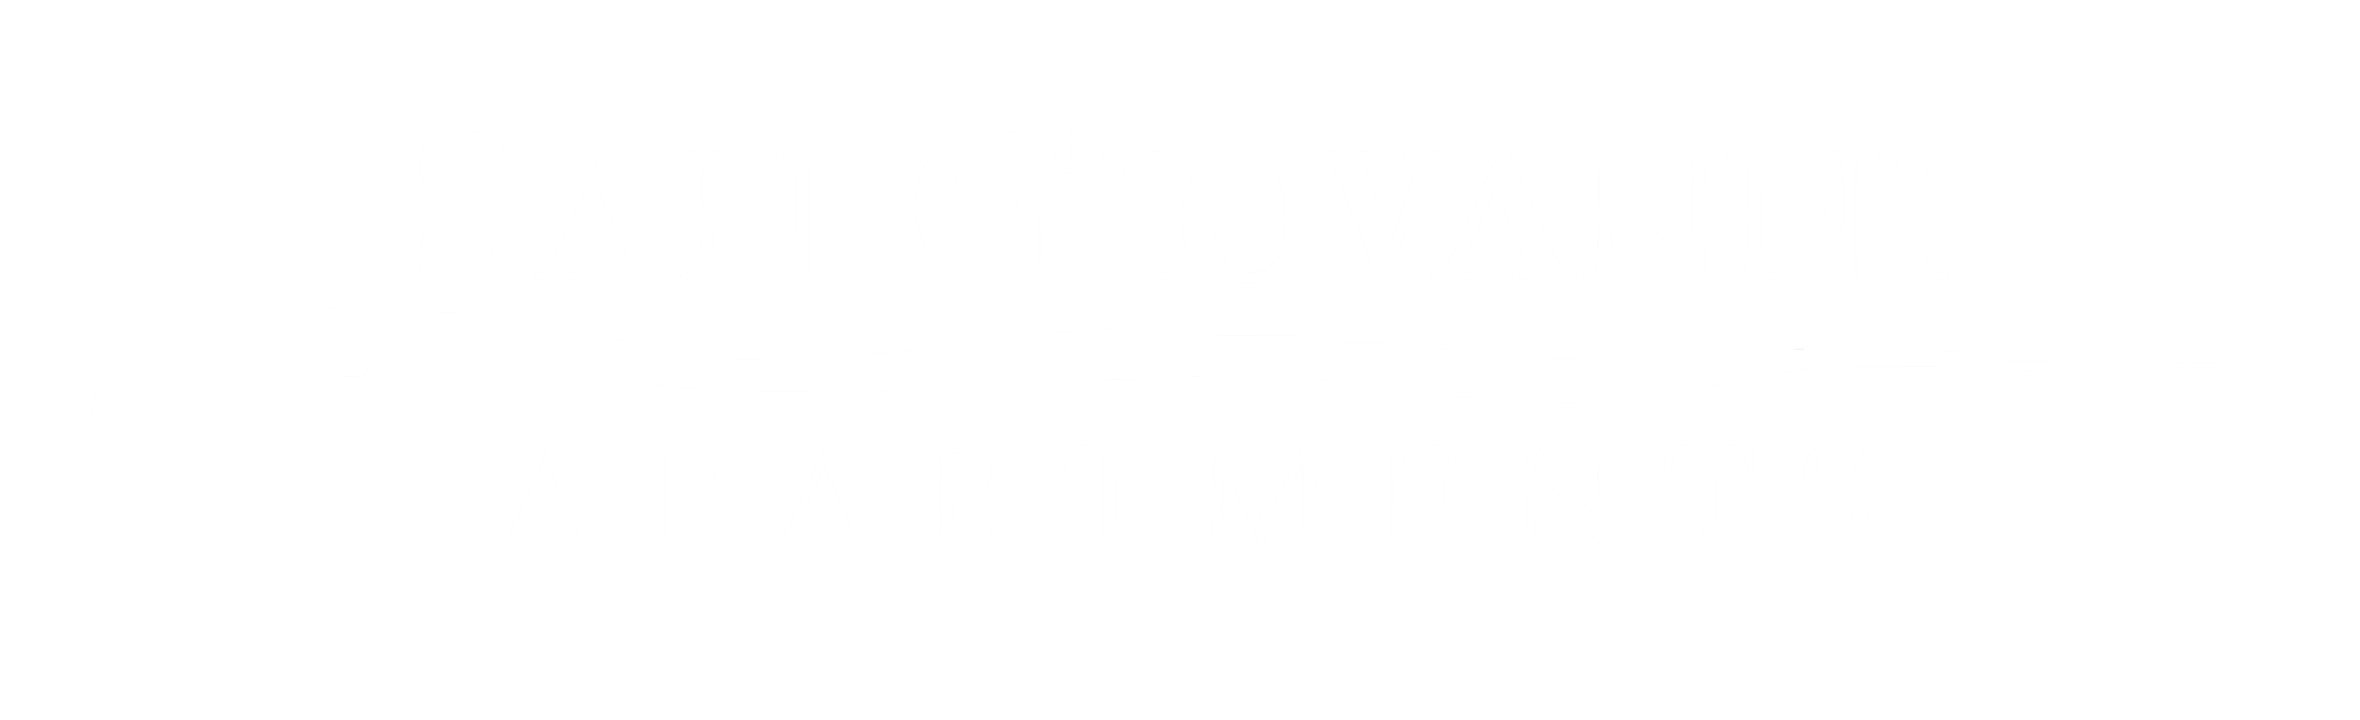 San Giovanni Apartments Property Logo 1